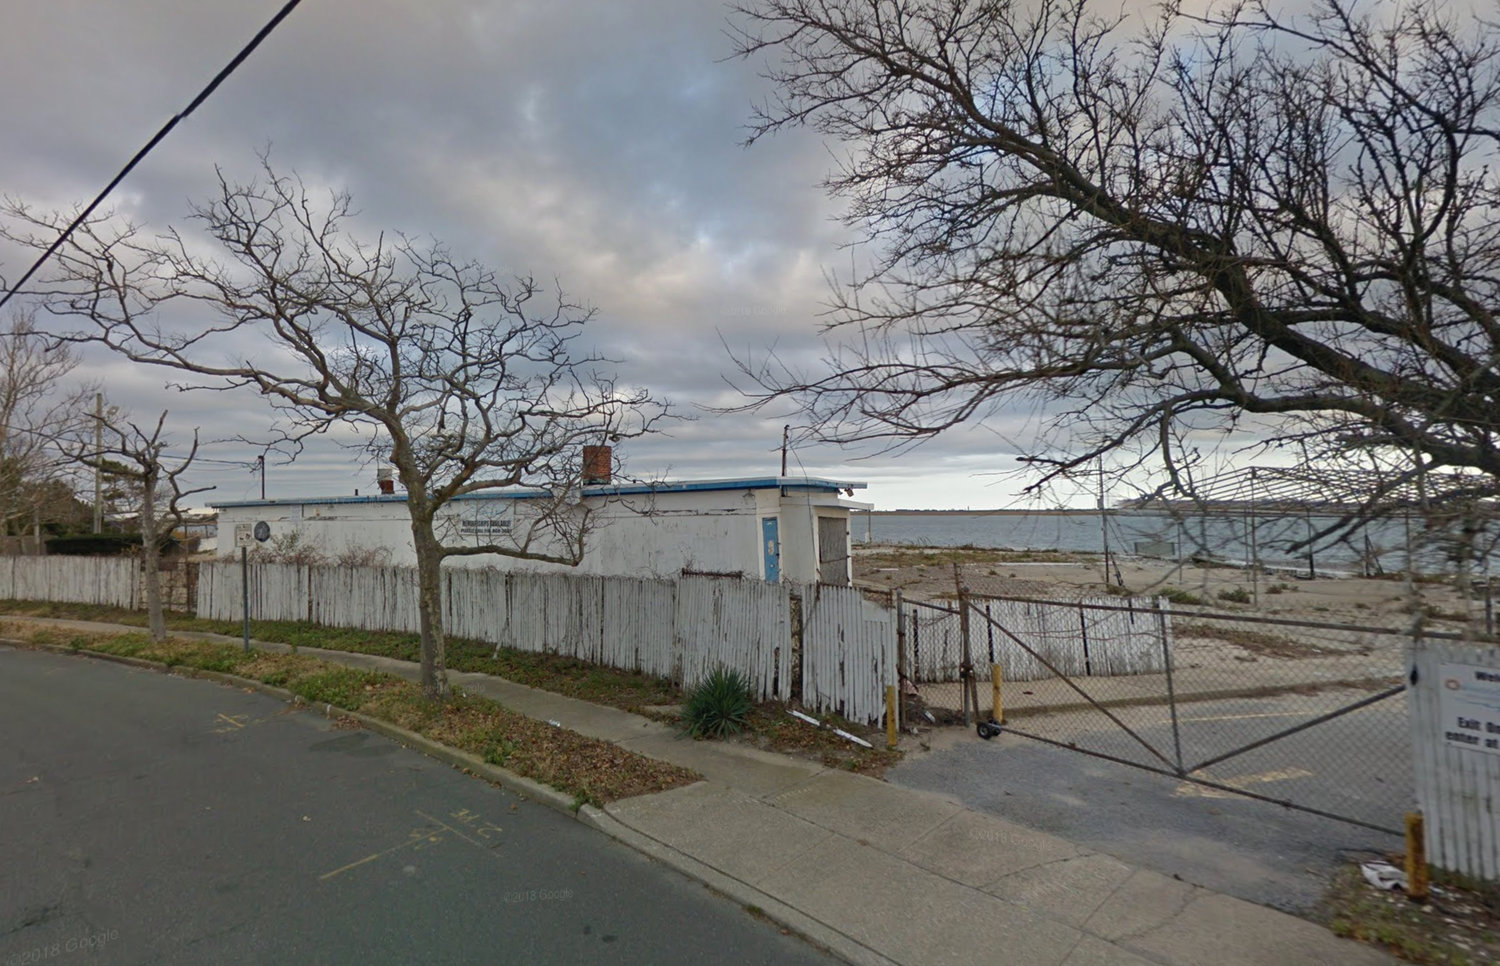 The once popular Oakwood Beach Club went up for auction on Oct. 14 but was not sold. Now community members are pursuing a plan to potentially turn the site into a park.